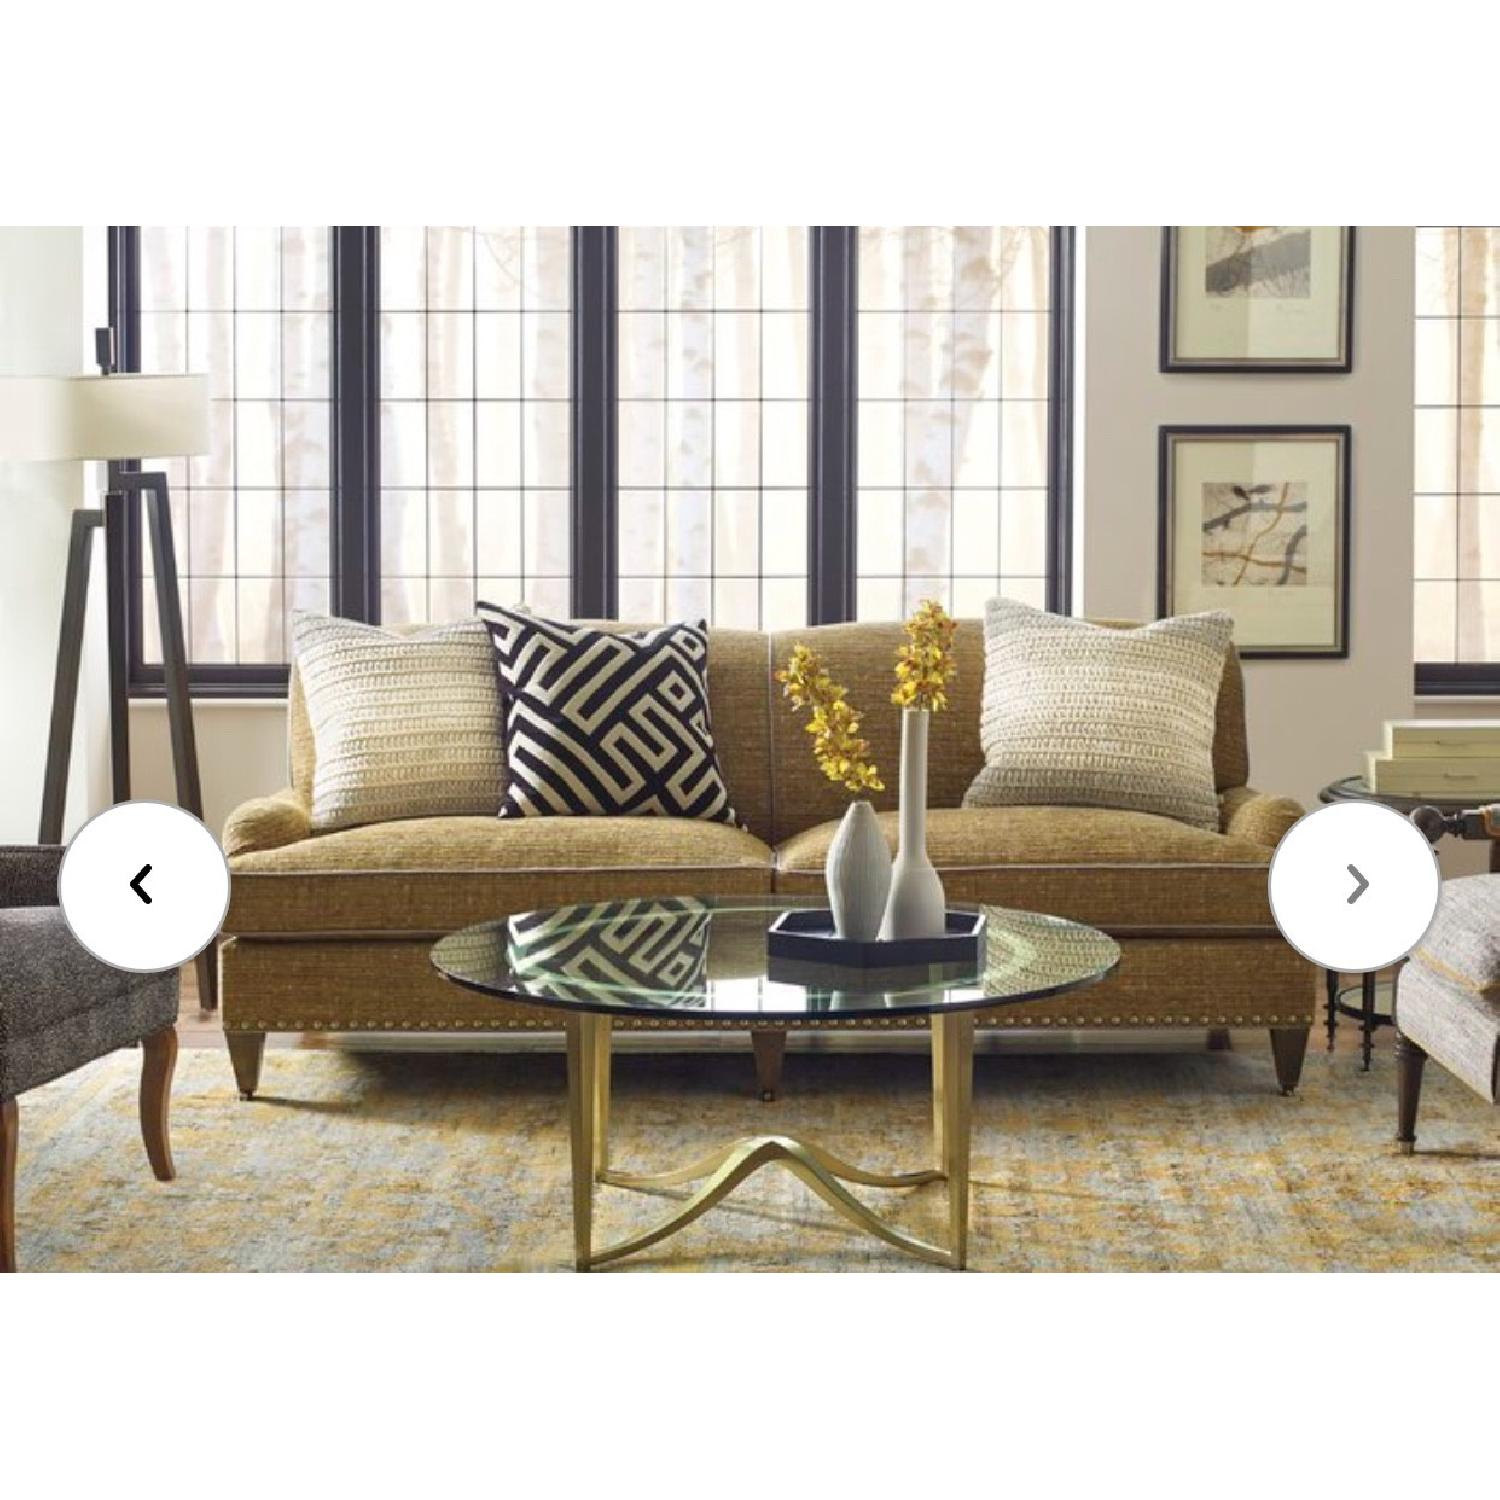 Company C Jasper Hand-Knotted Wool Gold/Gray Area Rug - image-2